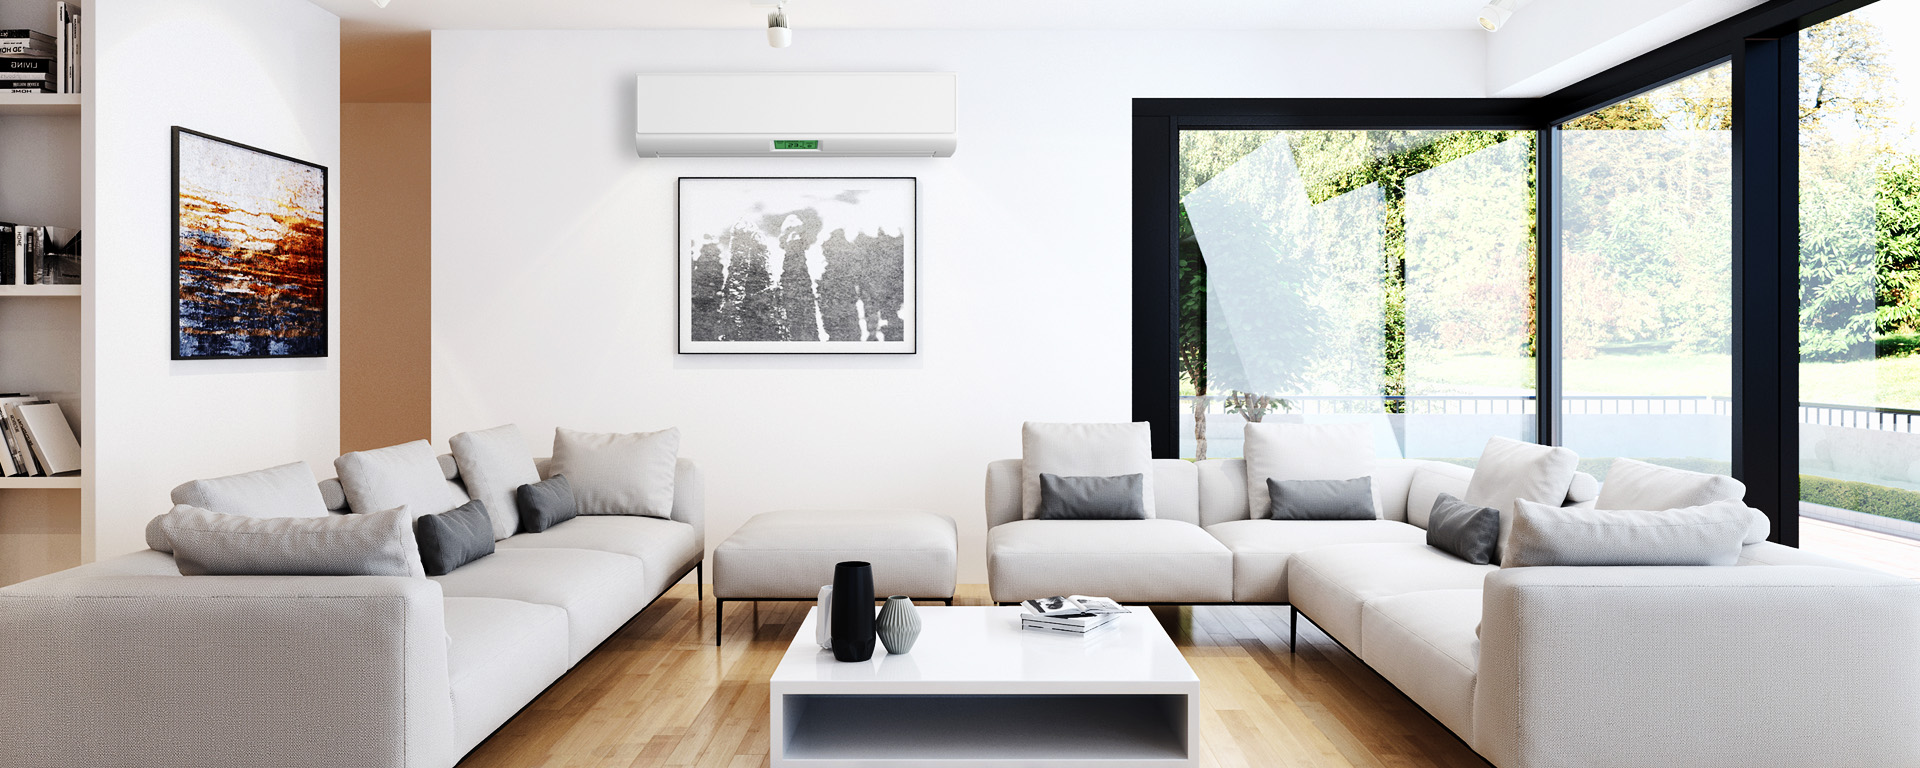 air conditioning servicing singapore